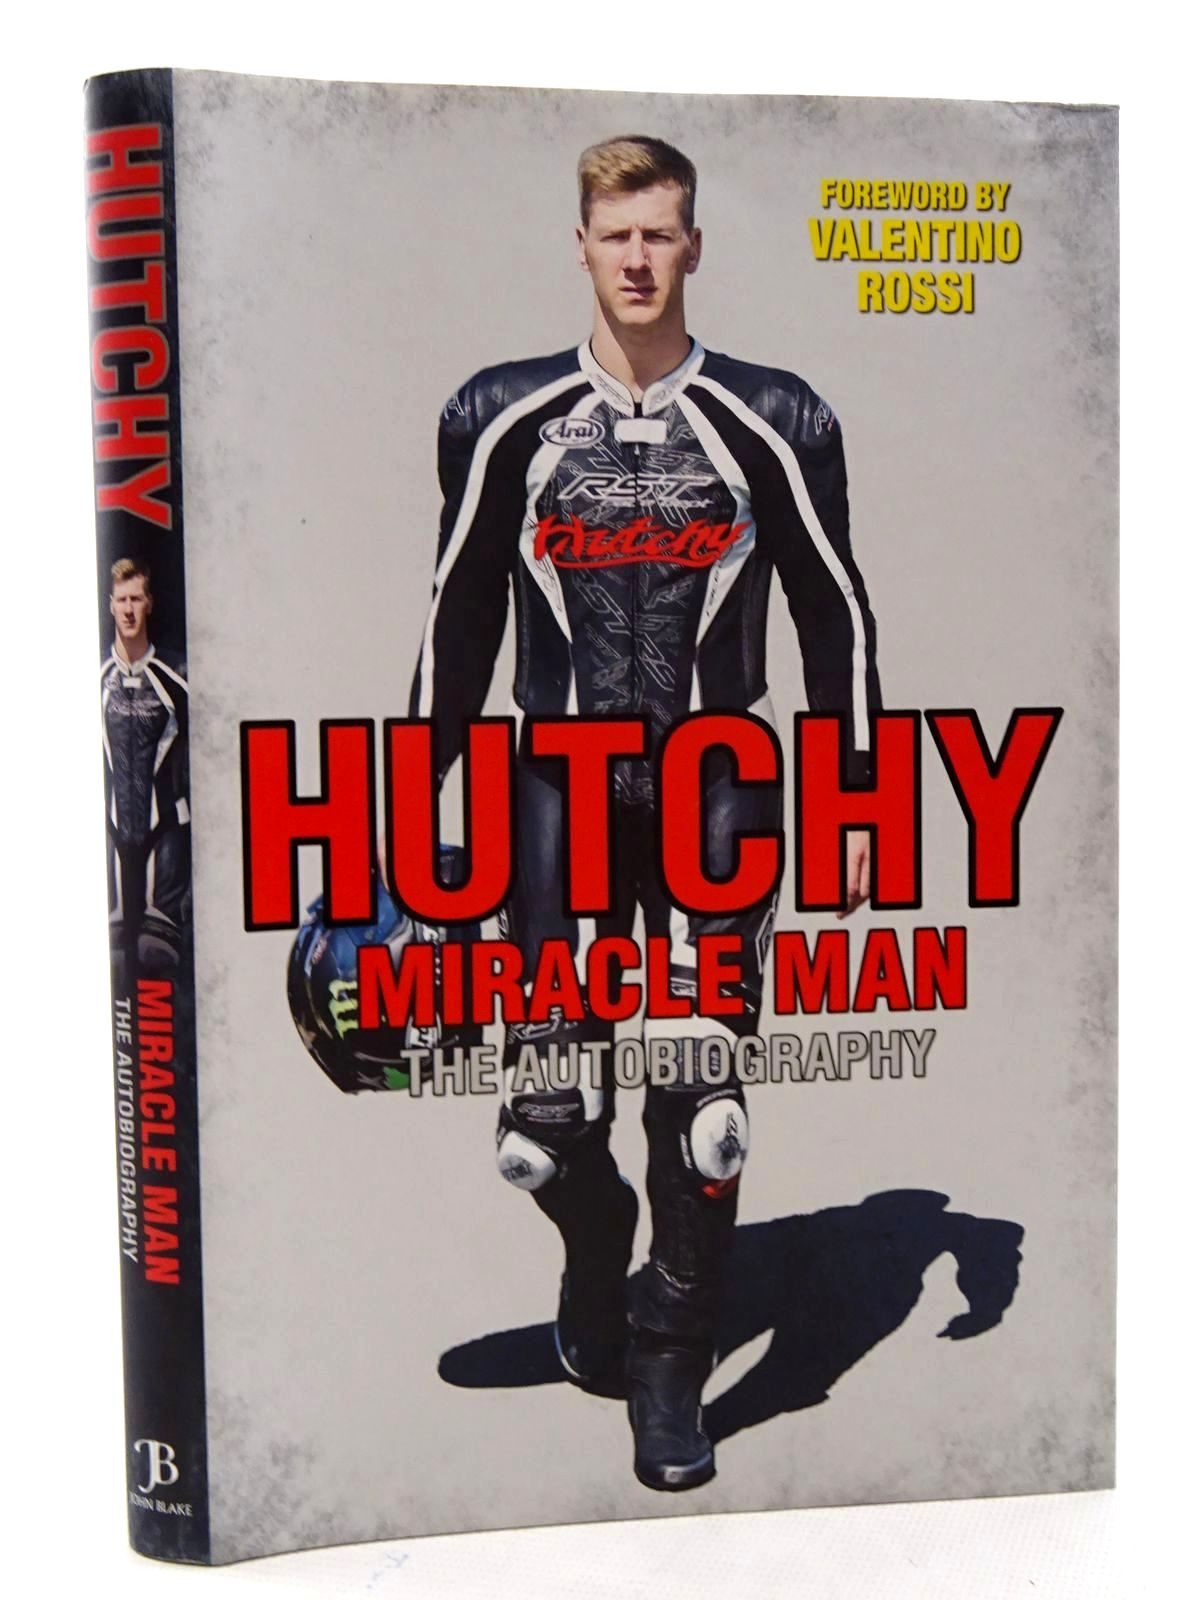 Photo of HUTCHY MIRACLE MAN THE AUTOBIOGRAPHY written by Hutchinson, Ian published by John Blake Publishing Ltd. (STOCK CODE: 1610543)  for sale by Stella & Rose's Books